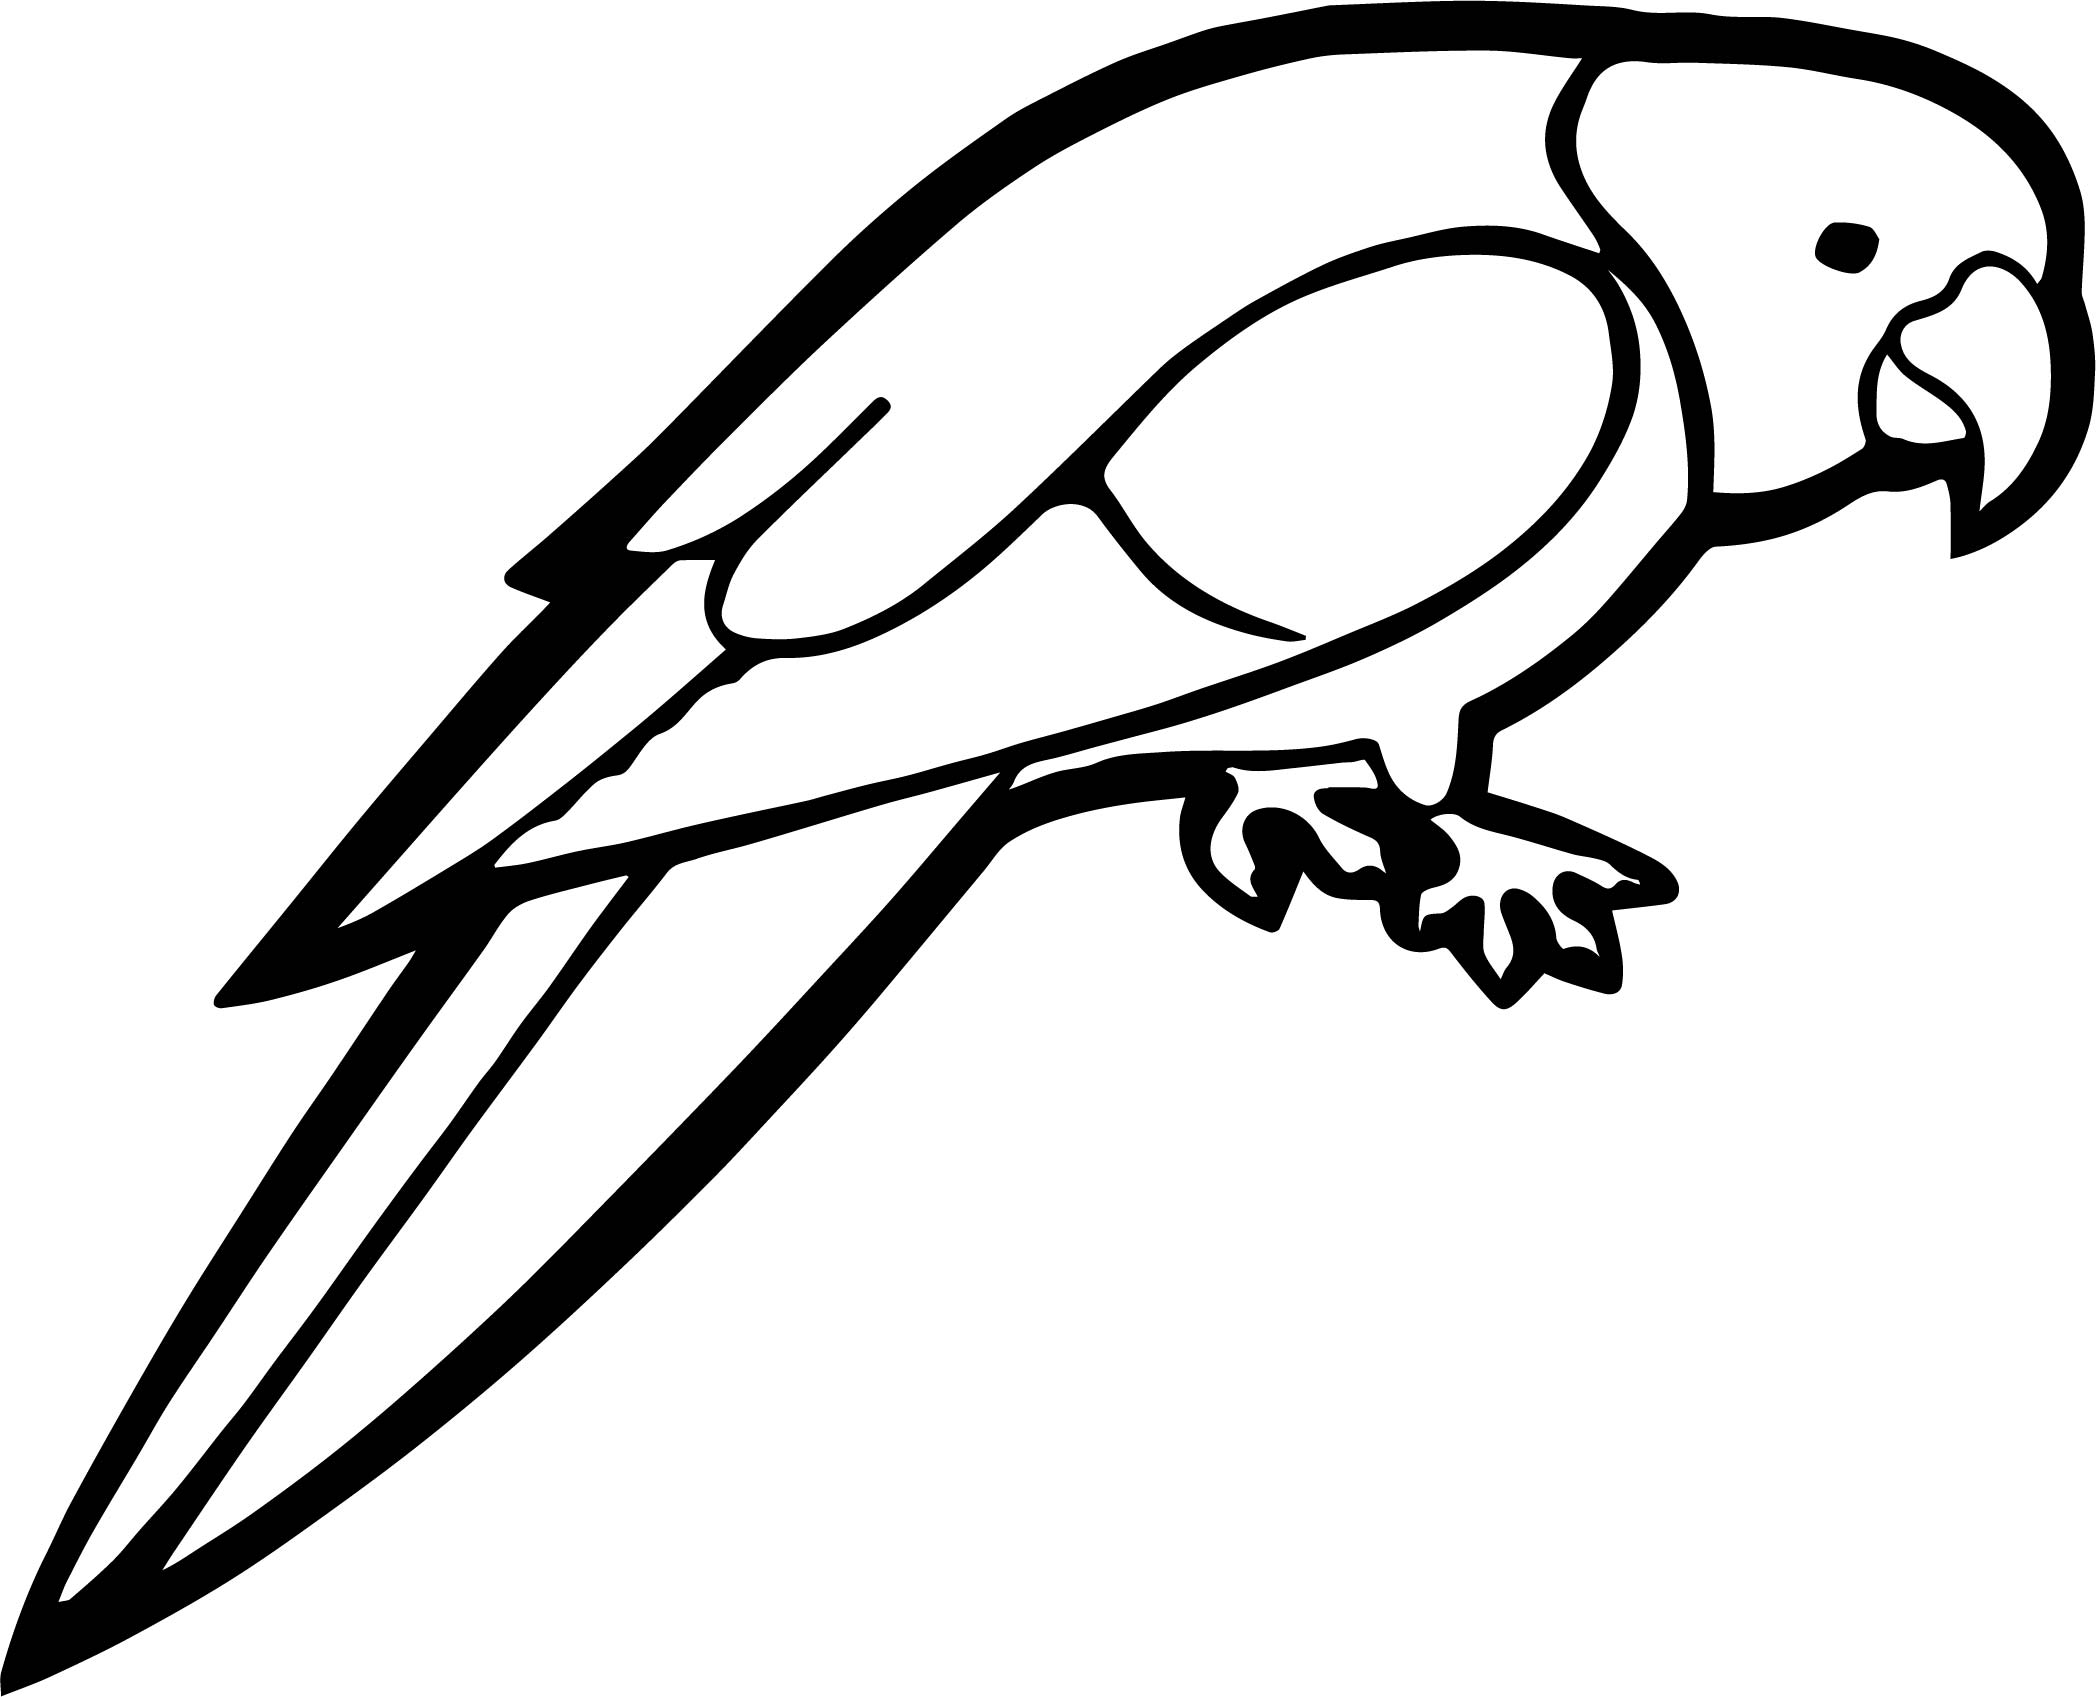 Talk parrot coloring page for Coloring pages parrot